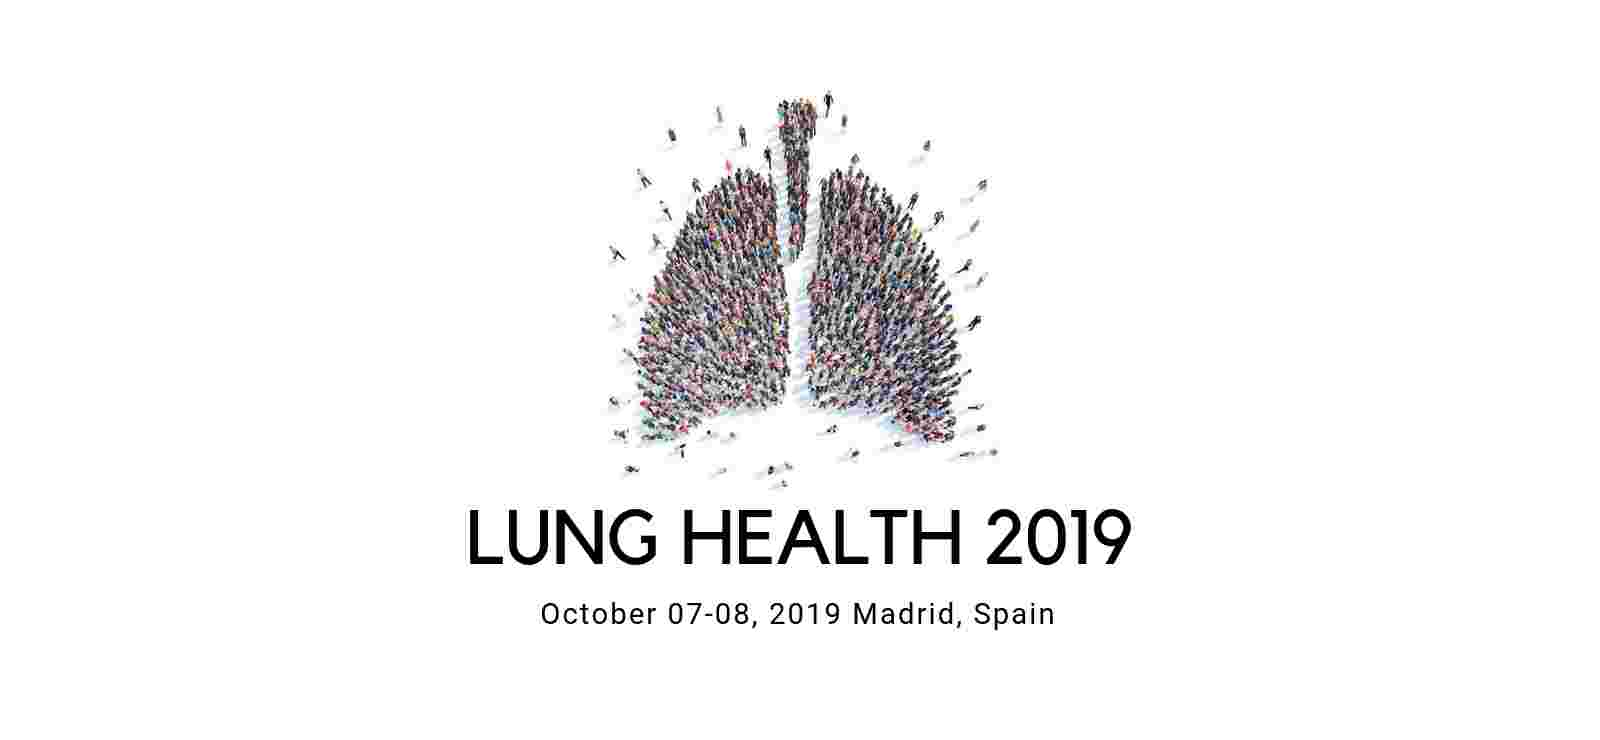 2nd World Congress on COPD, Asthma and Lung Health , Madrid,Spain